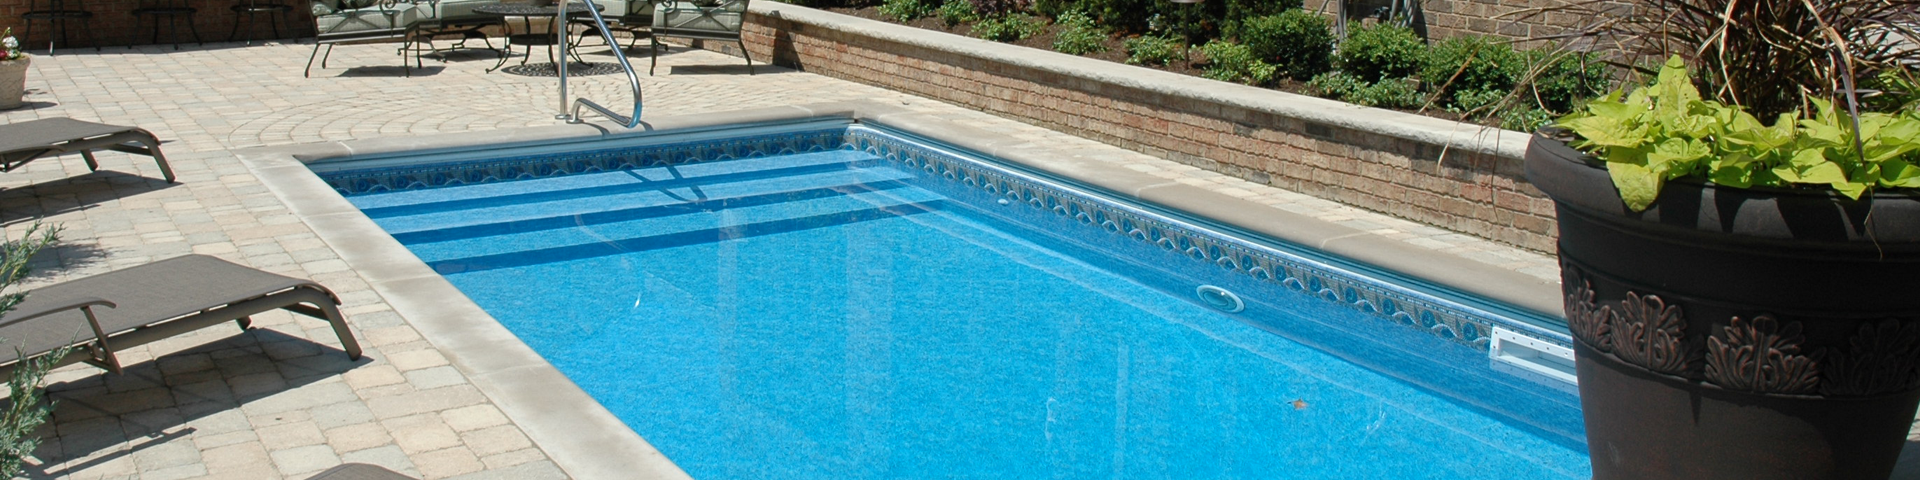 Inground Pools pro edge pools – inground pool installation, service, and more